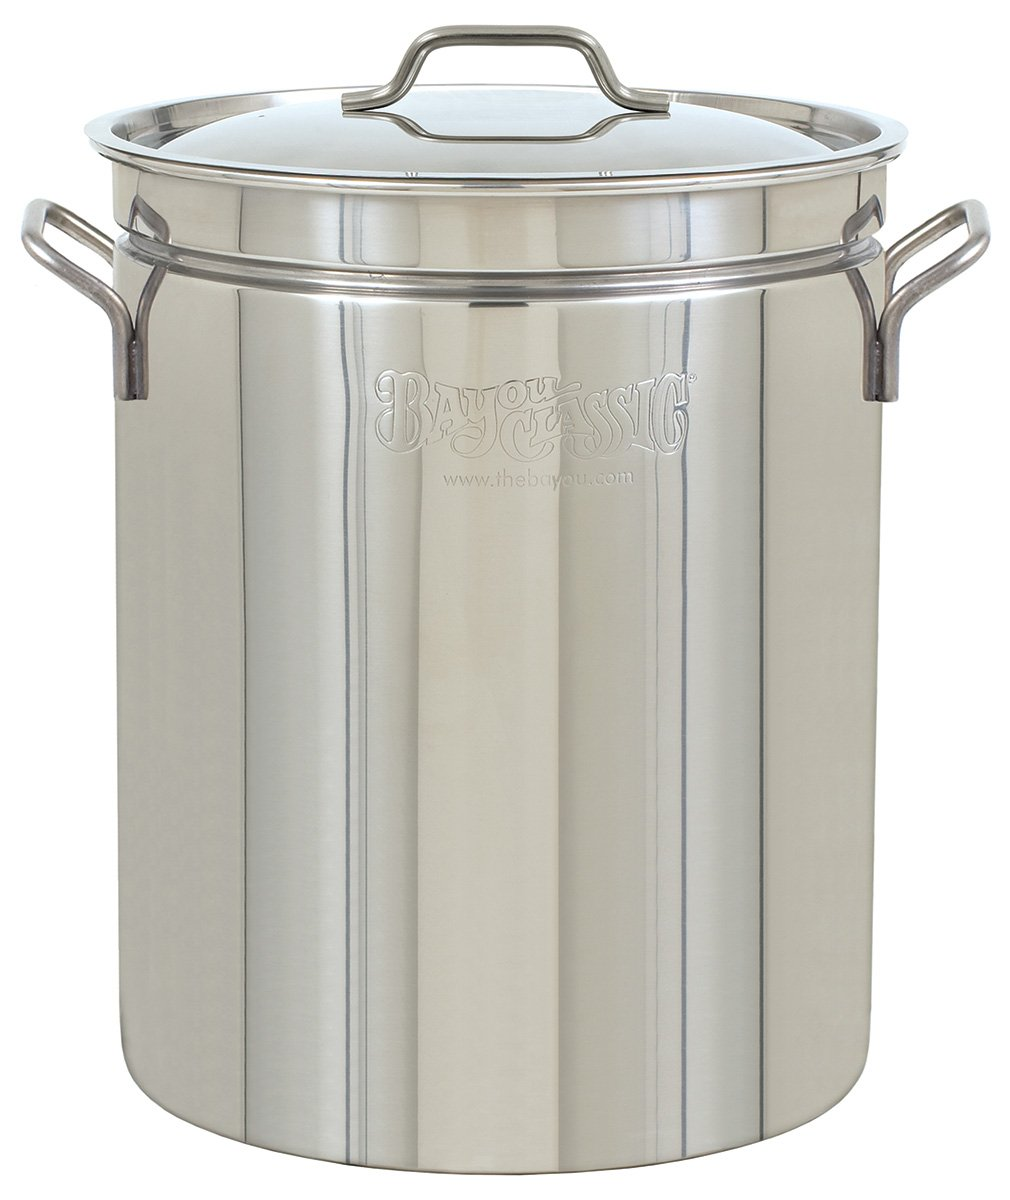 Bayou Classic 1044 44-Quart Stainless-Steel Stockpot